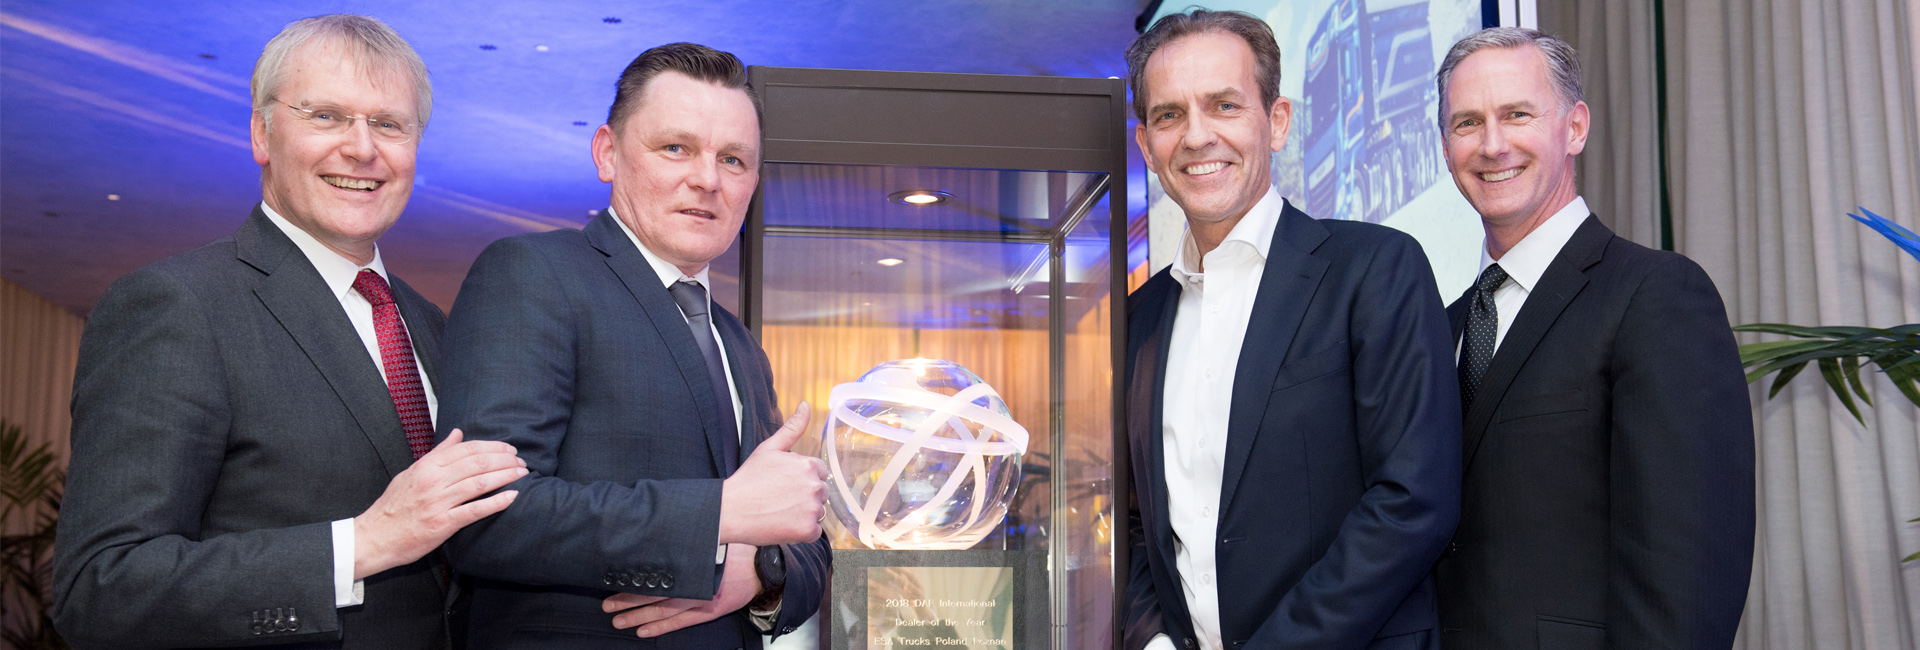 DAF 2018 International Dealer of the year